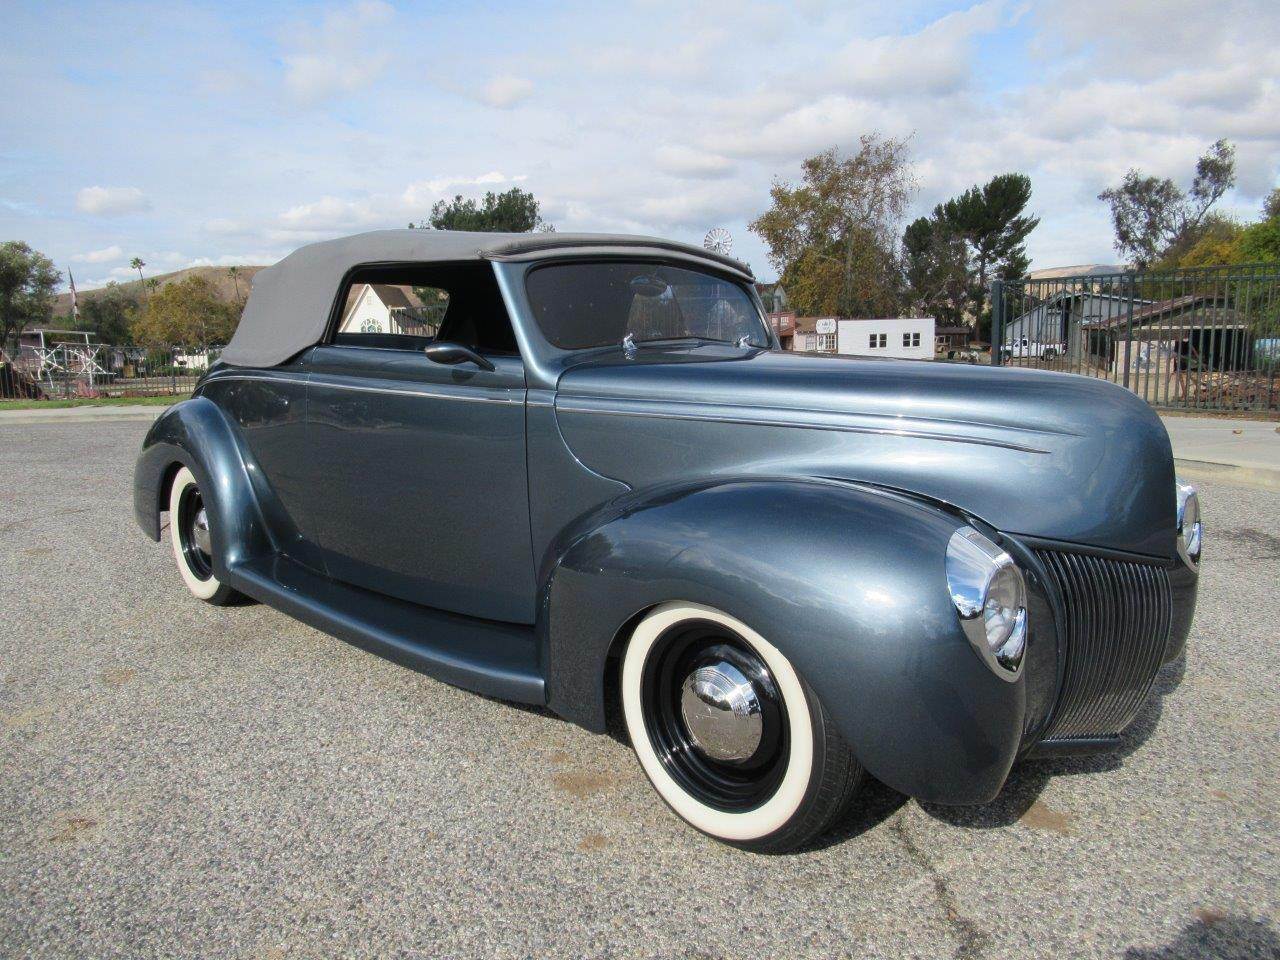 1939 Ford Deluxe (CC-1303226) for sale in SIMI VALLEY, California